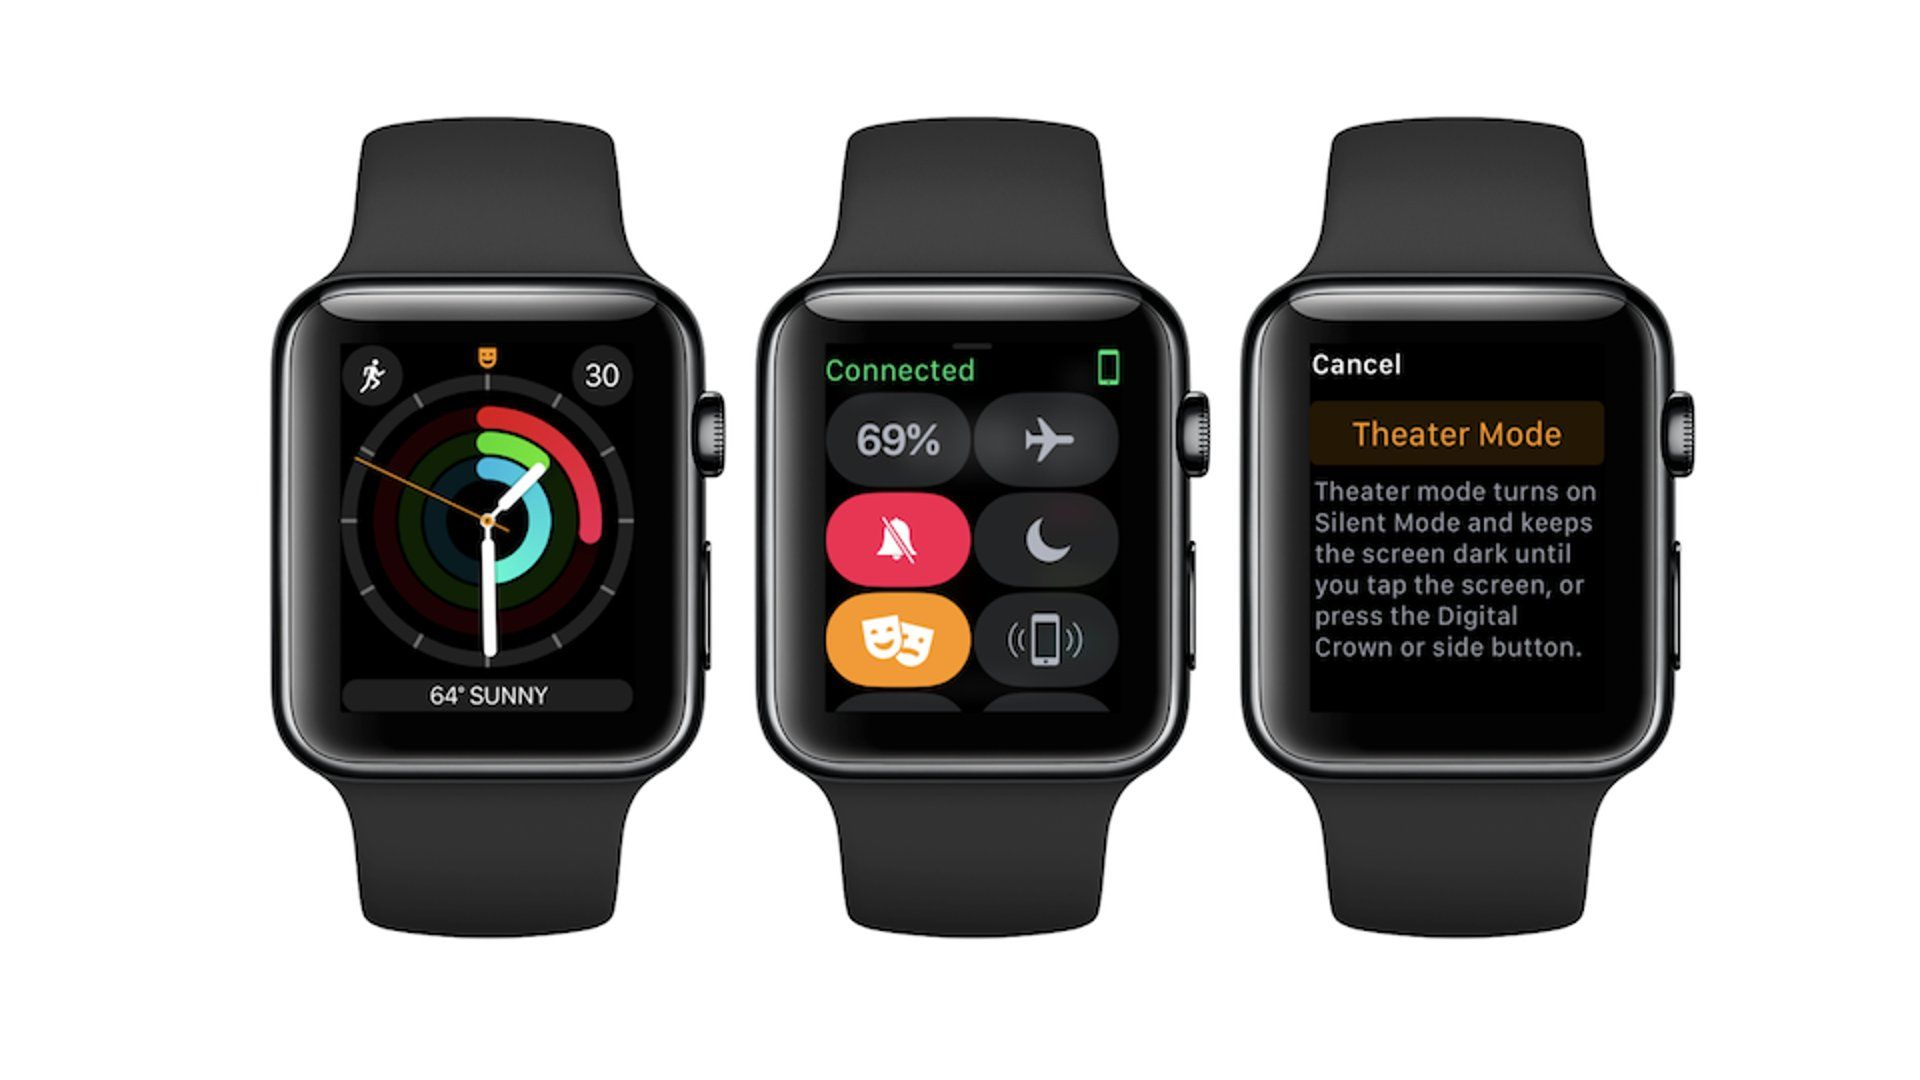 Apple Watch - Theater Mode